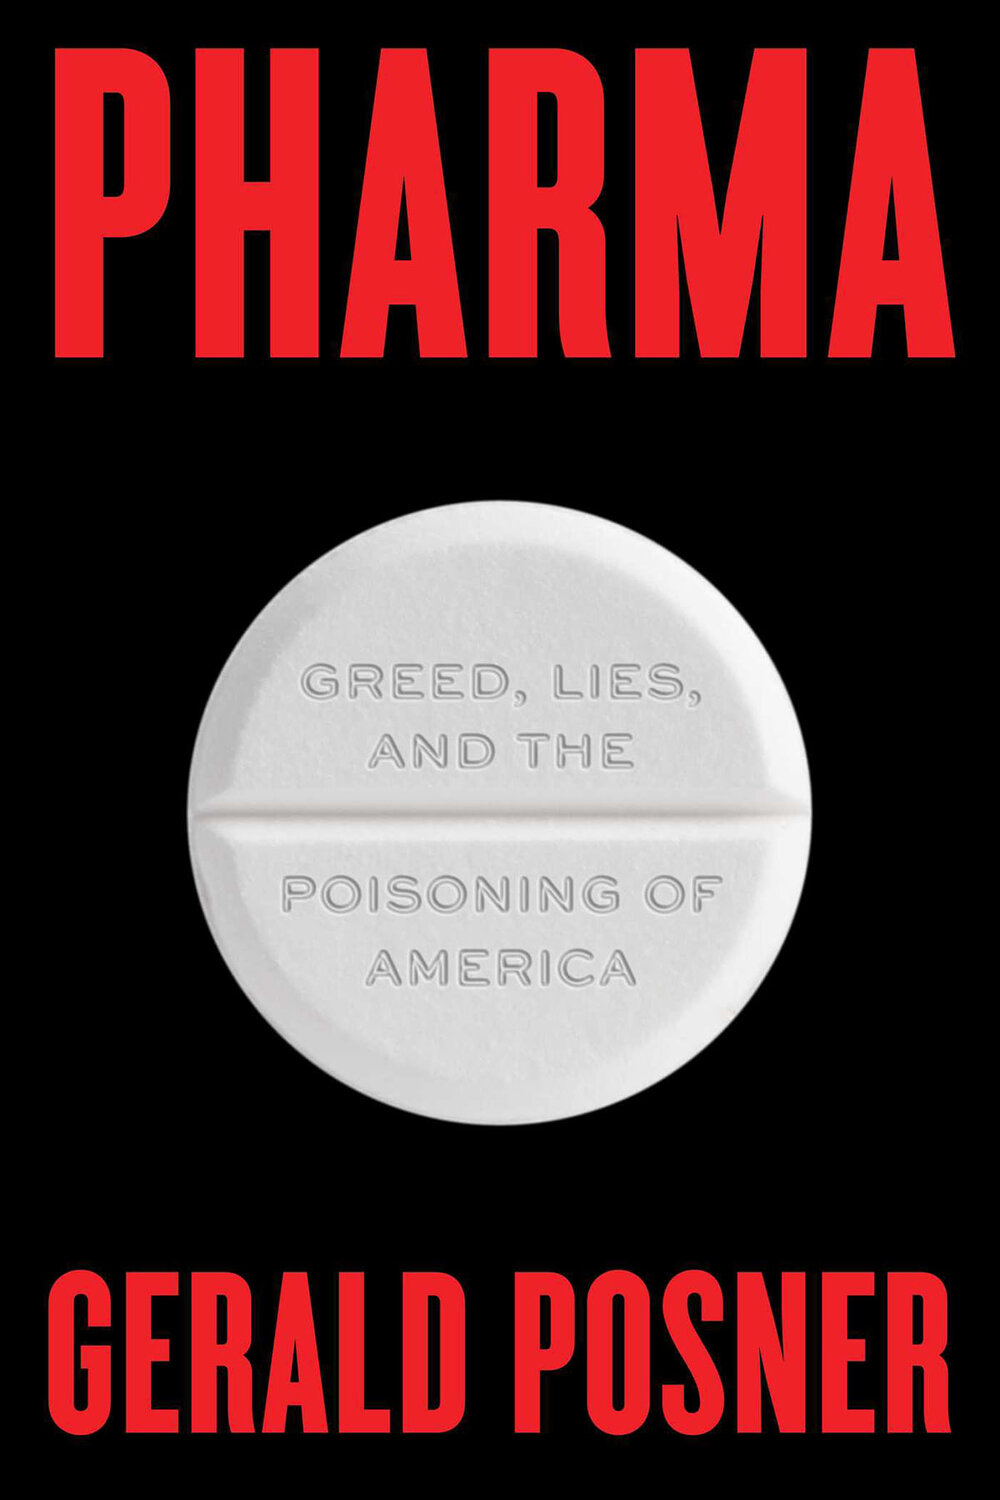 Pharma: Greed, Lies and the Poisoning of America by Gerald Posner